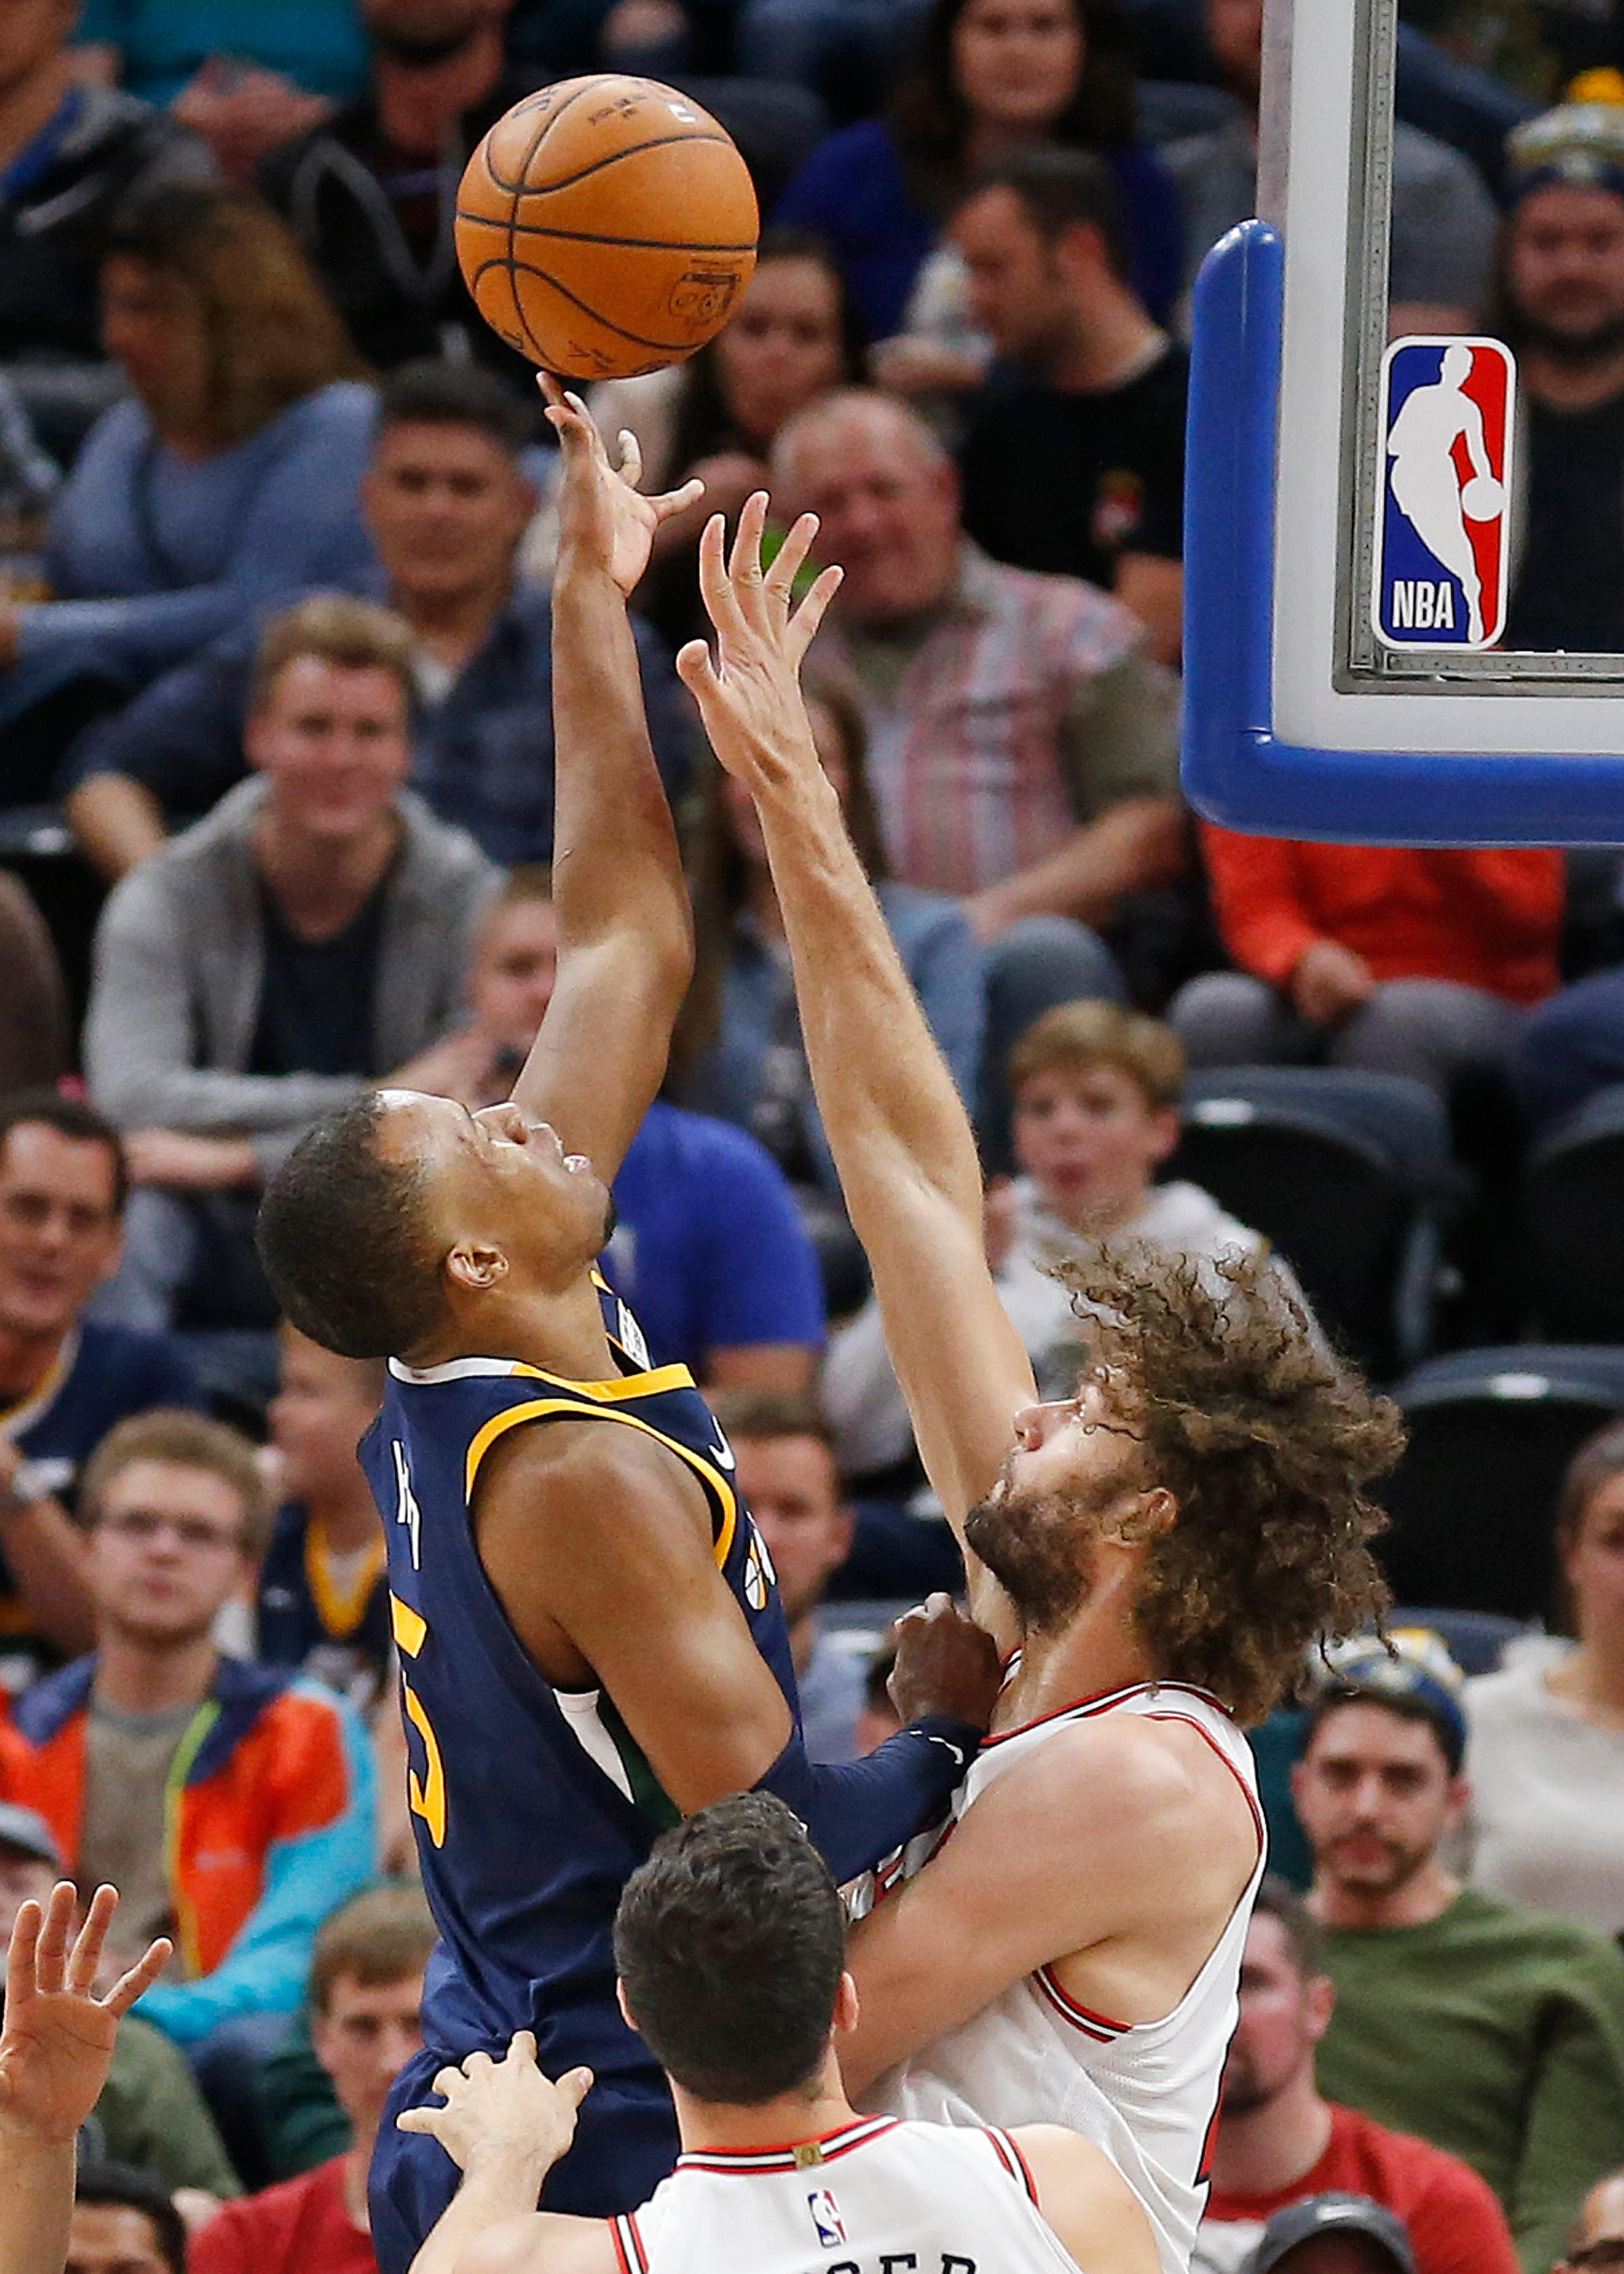 Chicago Bulls center Robin Lopez, right, defends as Utah Jazz guard Rodney Hood shoots during the first half of an NBA basketball game Wednesday, Nov. 22, 2017, in Salt Lake City. (AP Photo/Rick Bowmer)